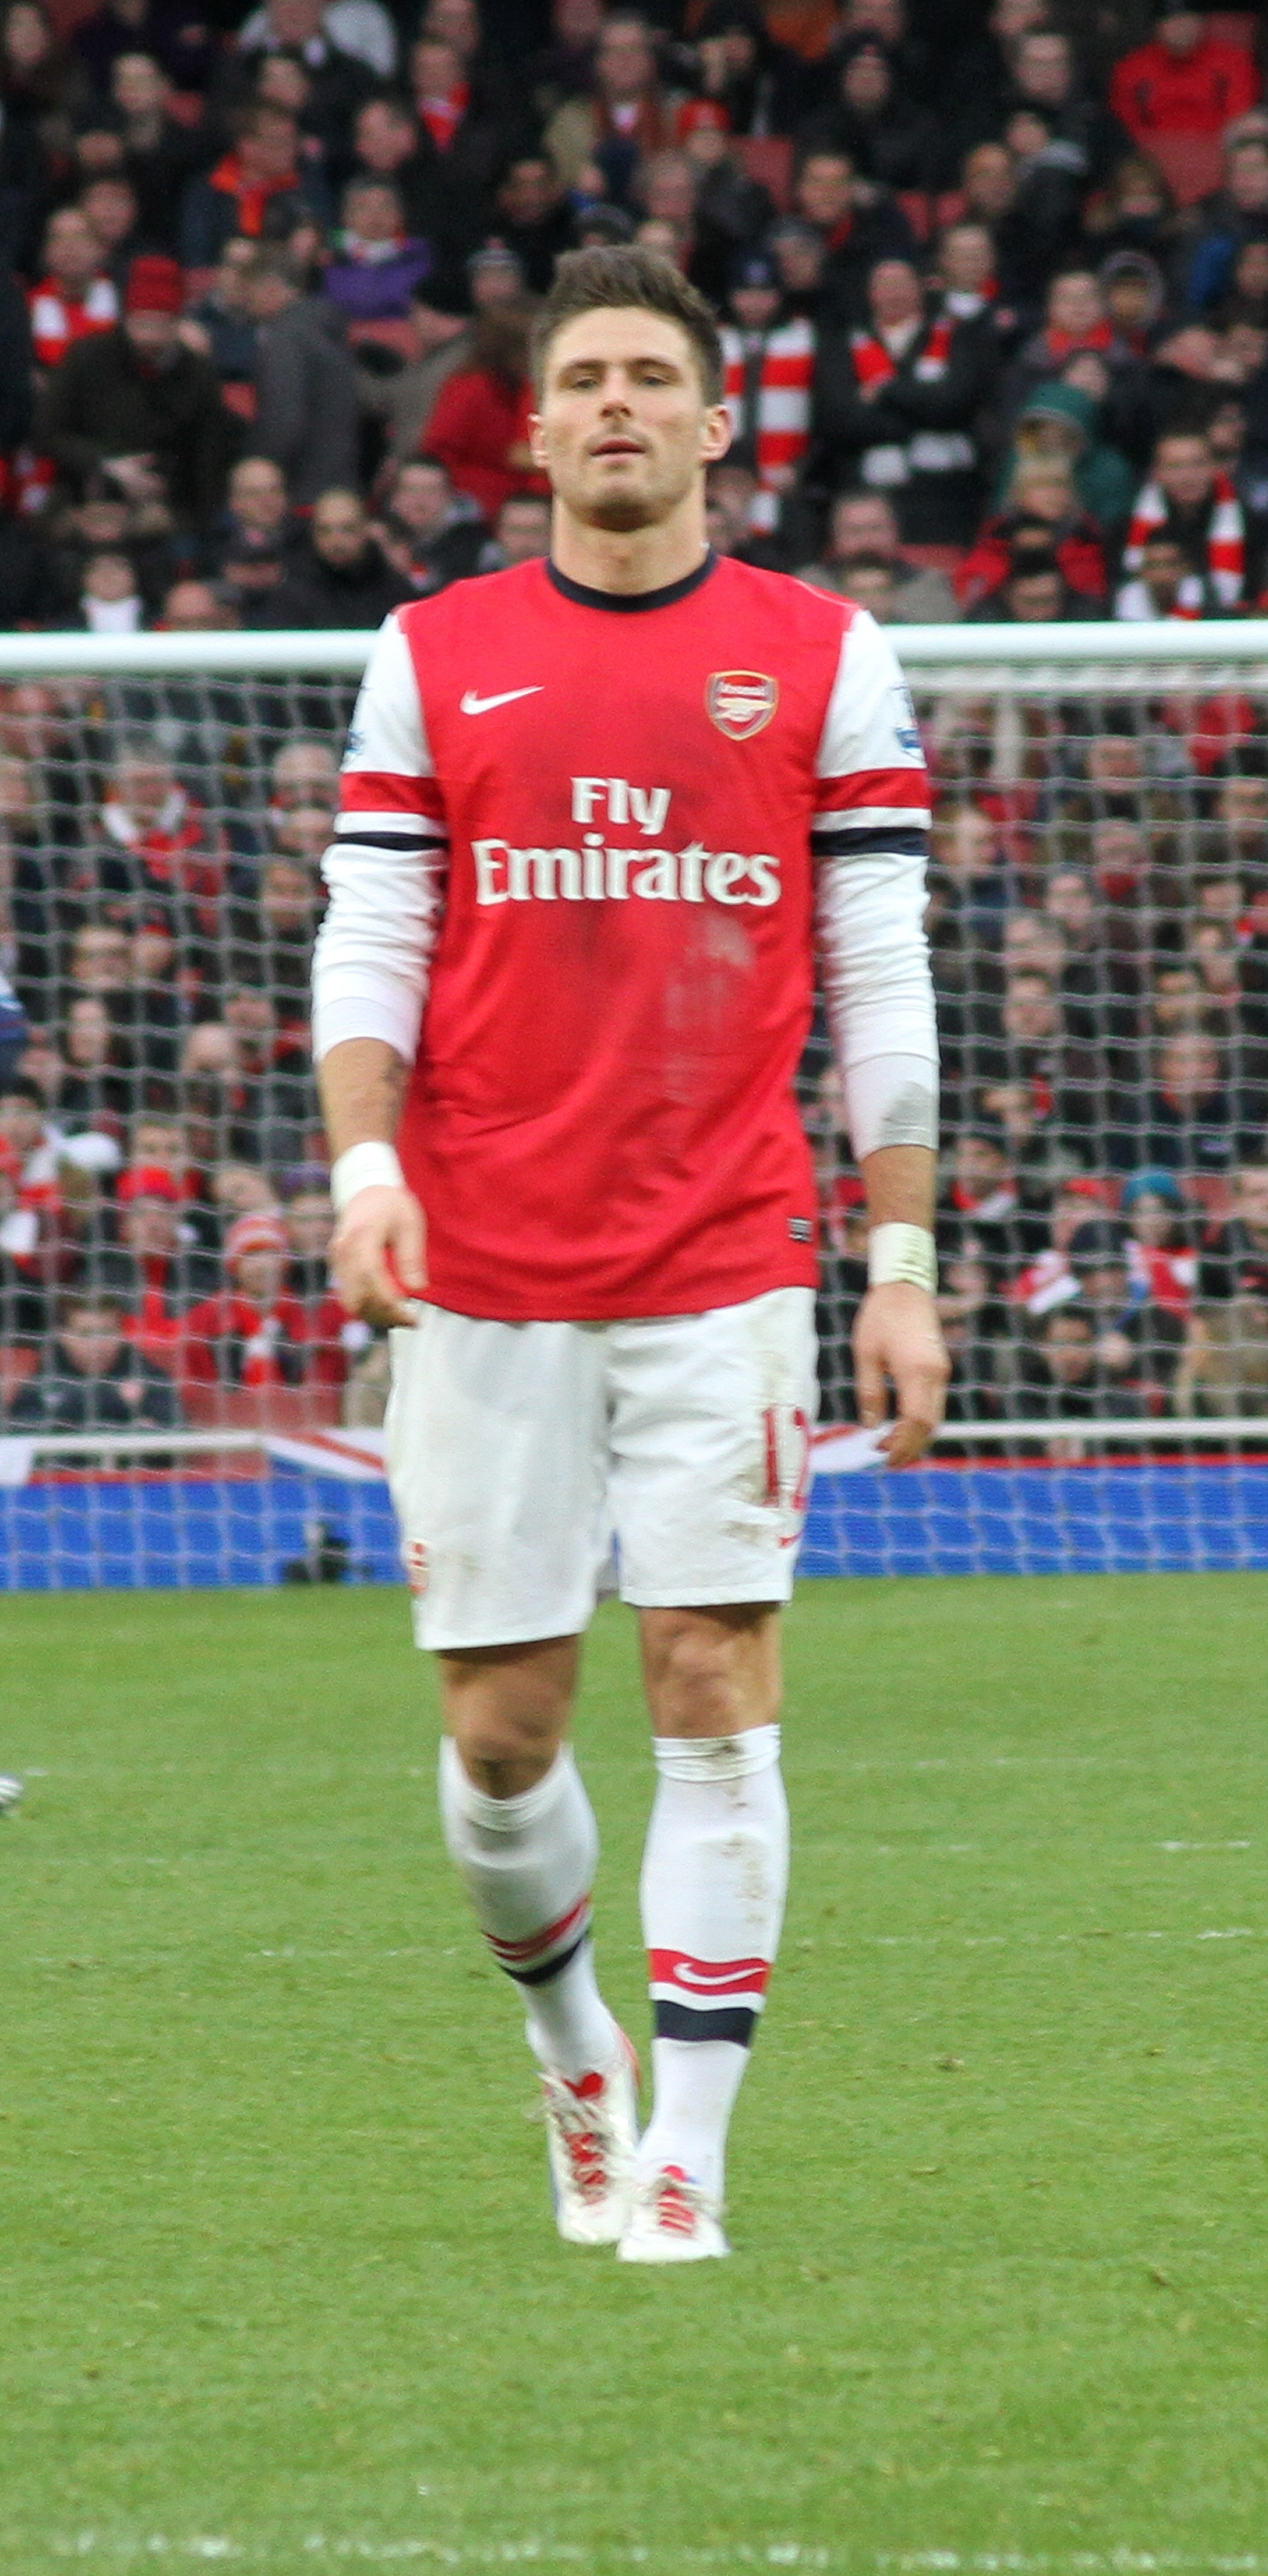 FileOlivier Giroud 1 Cropped